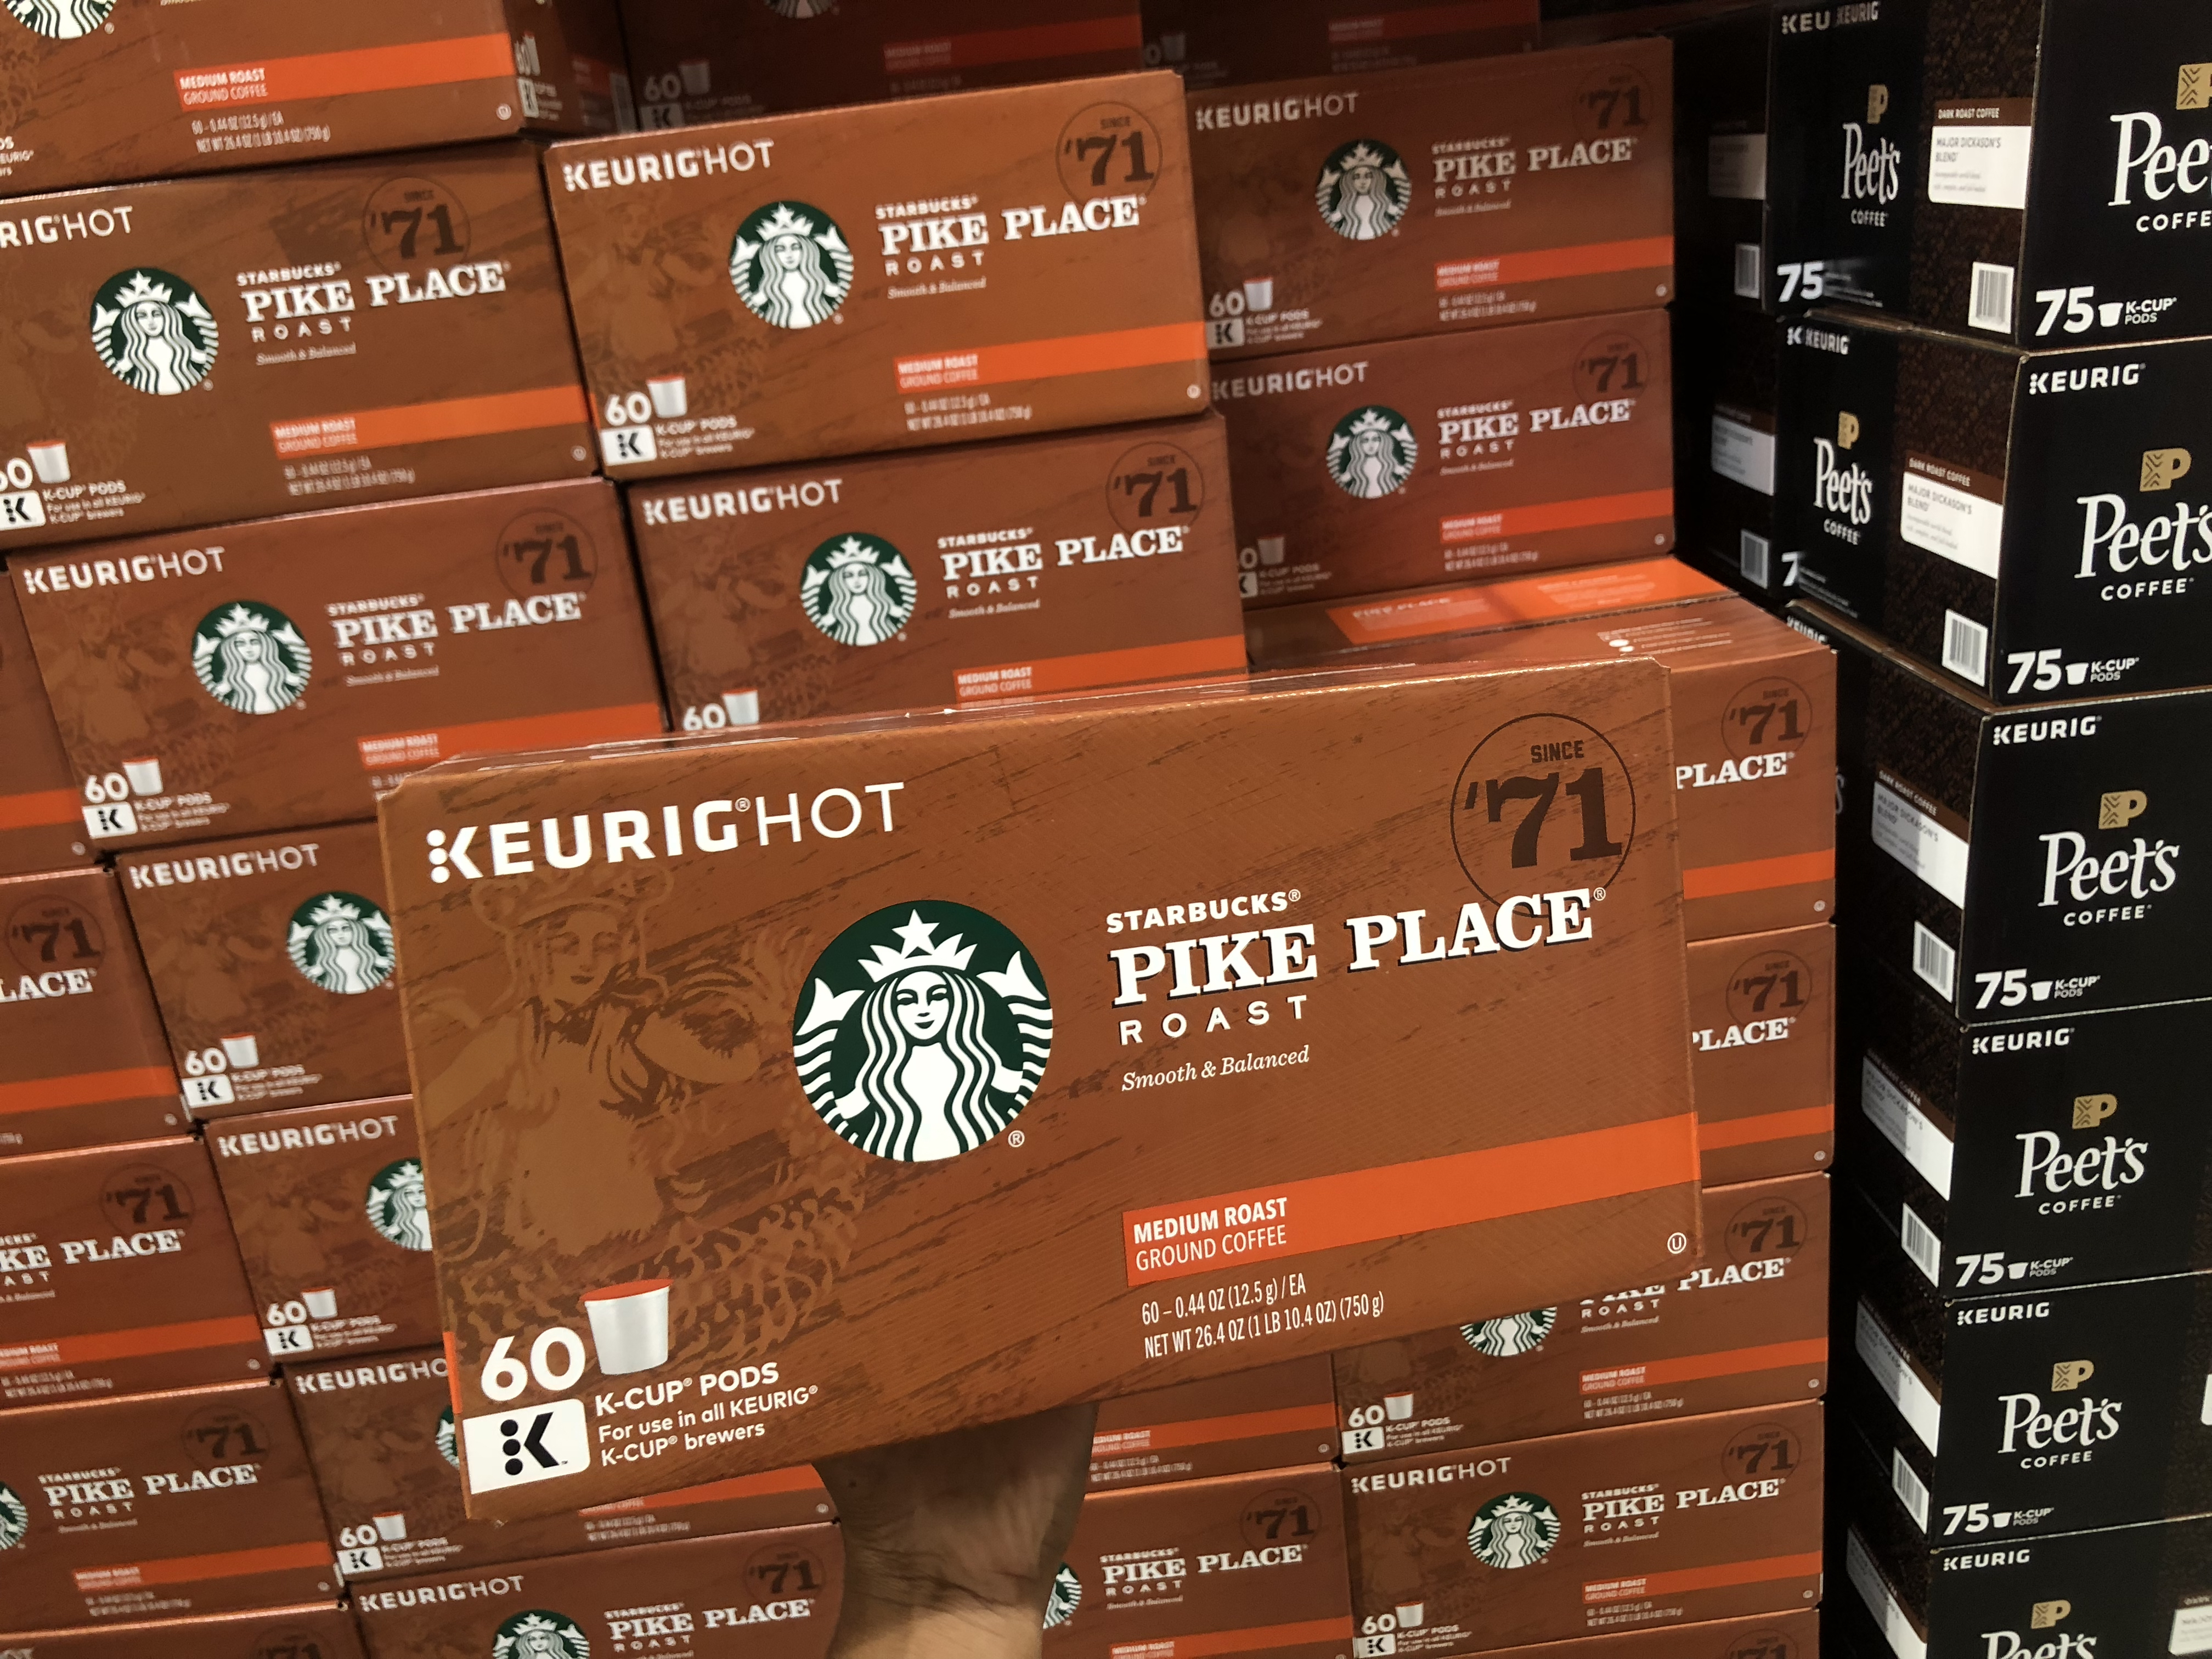 October 2018 keto Costco deals – Starbucks at Costco